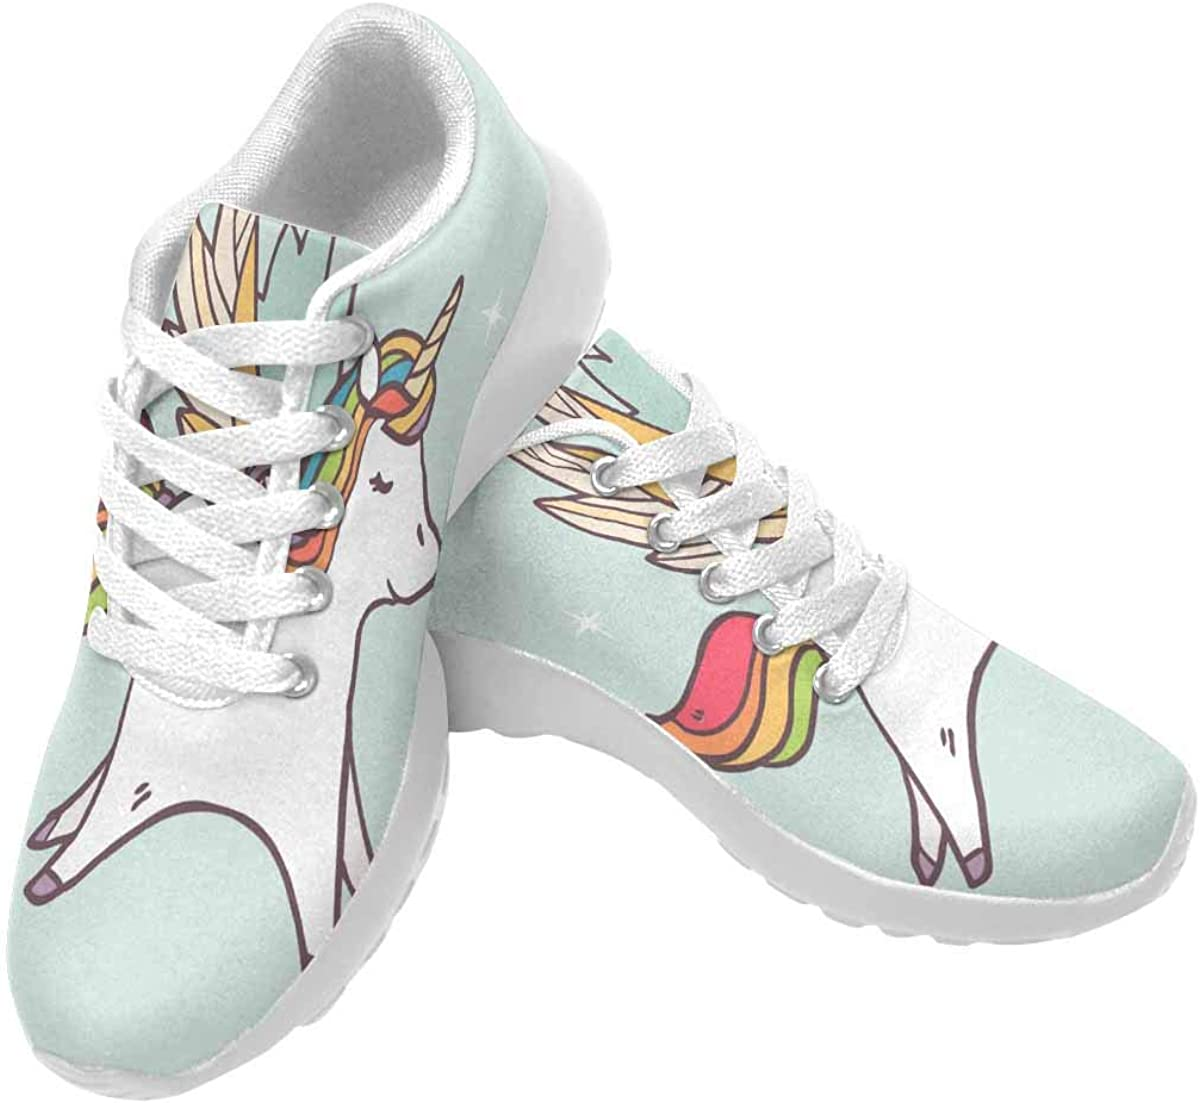 Sports Flywire Knitting Shoes For Boy Girl,Print Bird Flower,